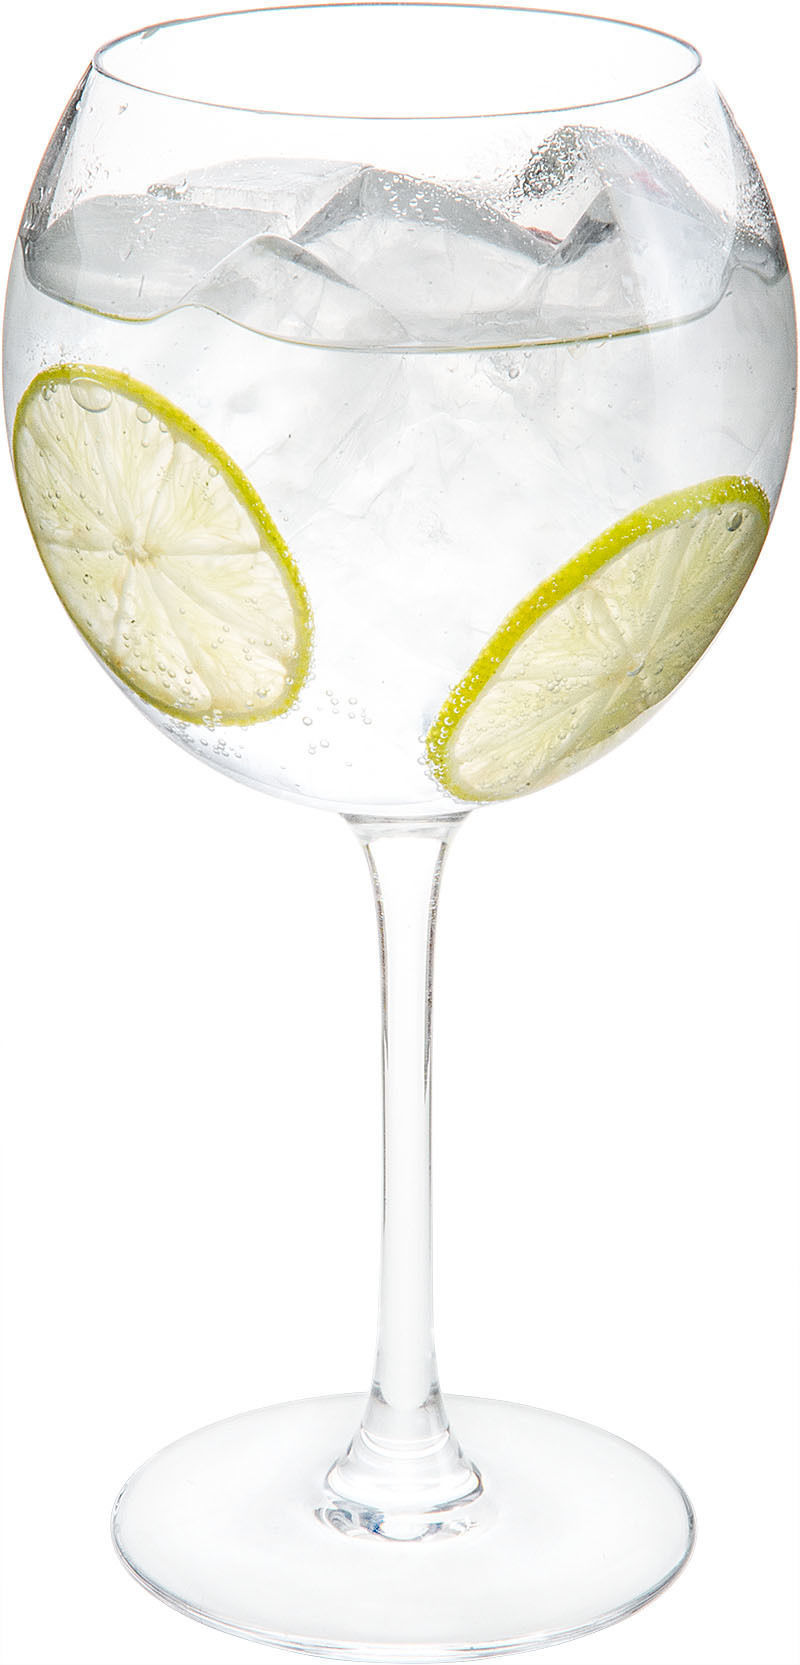 How to Make the Bianco and Tonic